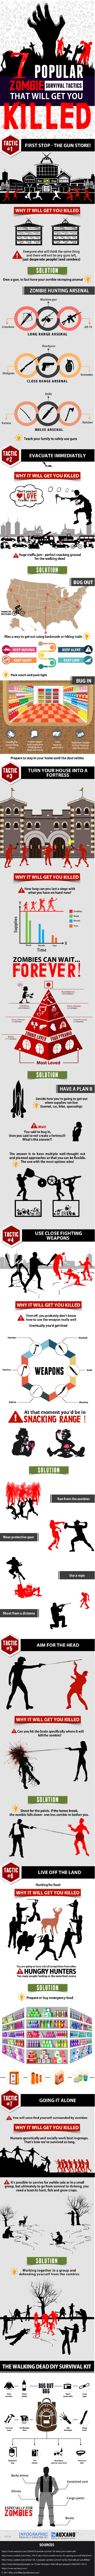 ZombiesInfographic-7-popular-zombie-survival-tactics